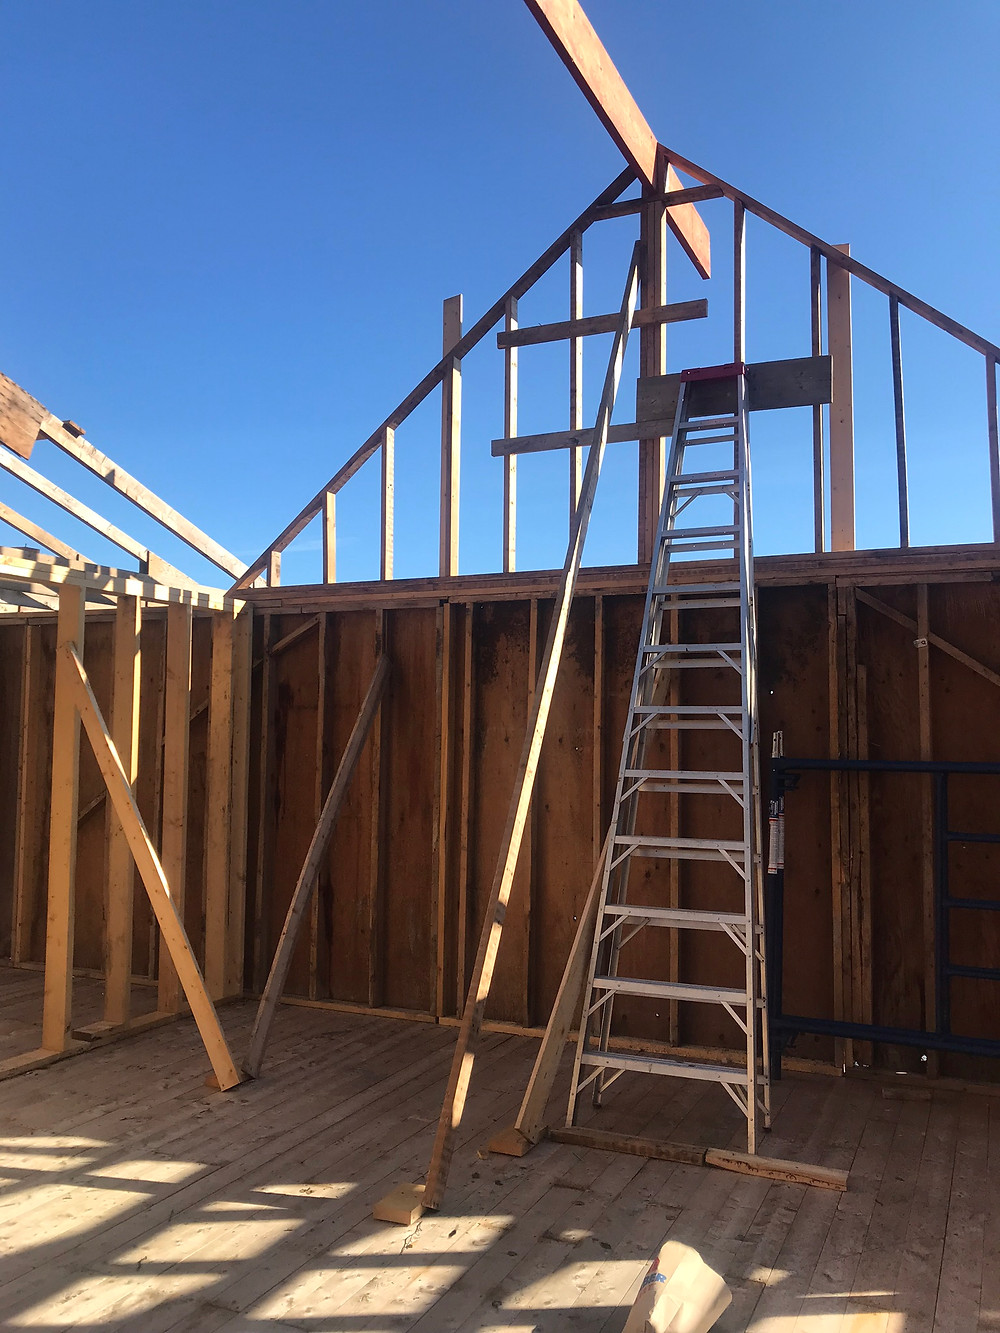 A ridge beam spanning from roof gables on our diy cabin build